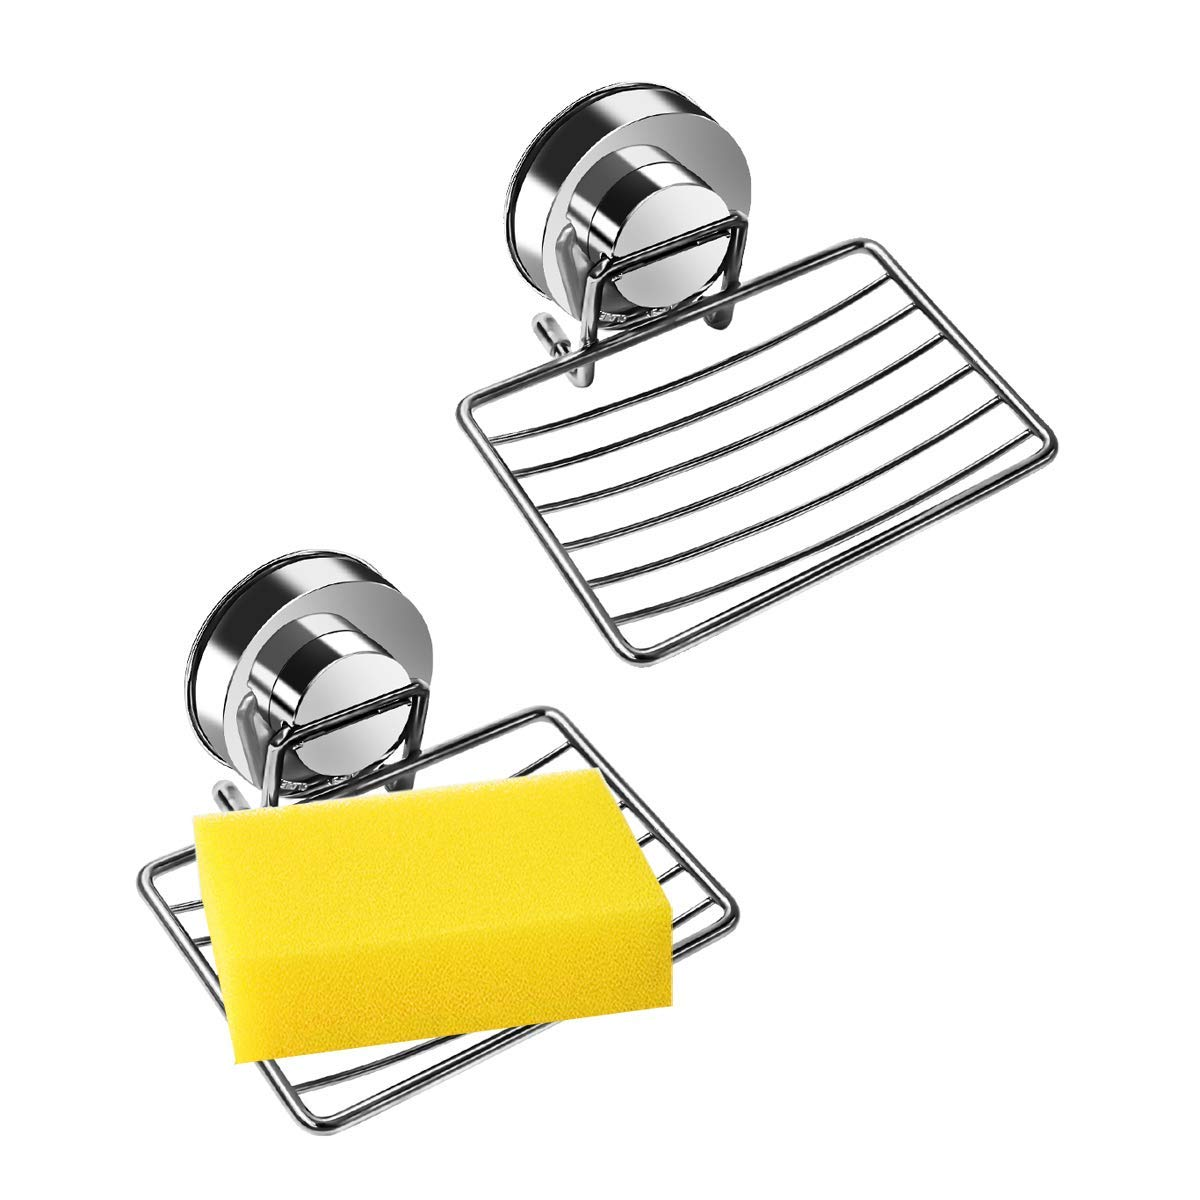 2Pack Soap Dish Holder, Stainless Steel Soap Basket with Strong Suction Cup Loofah Sponge Holder, Soap Saver Used for Bathroom, Kitchen, Shower, Sink, Camp, RV by Kamay